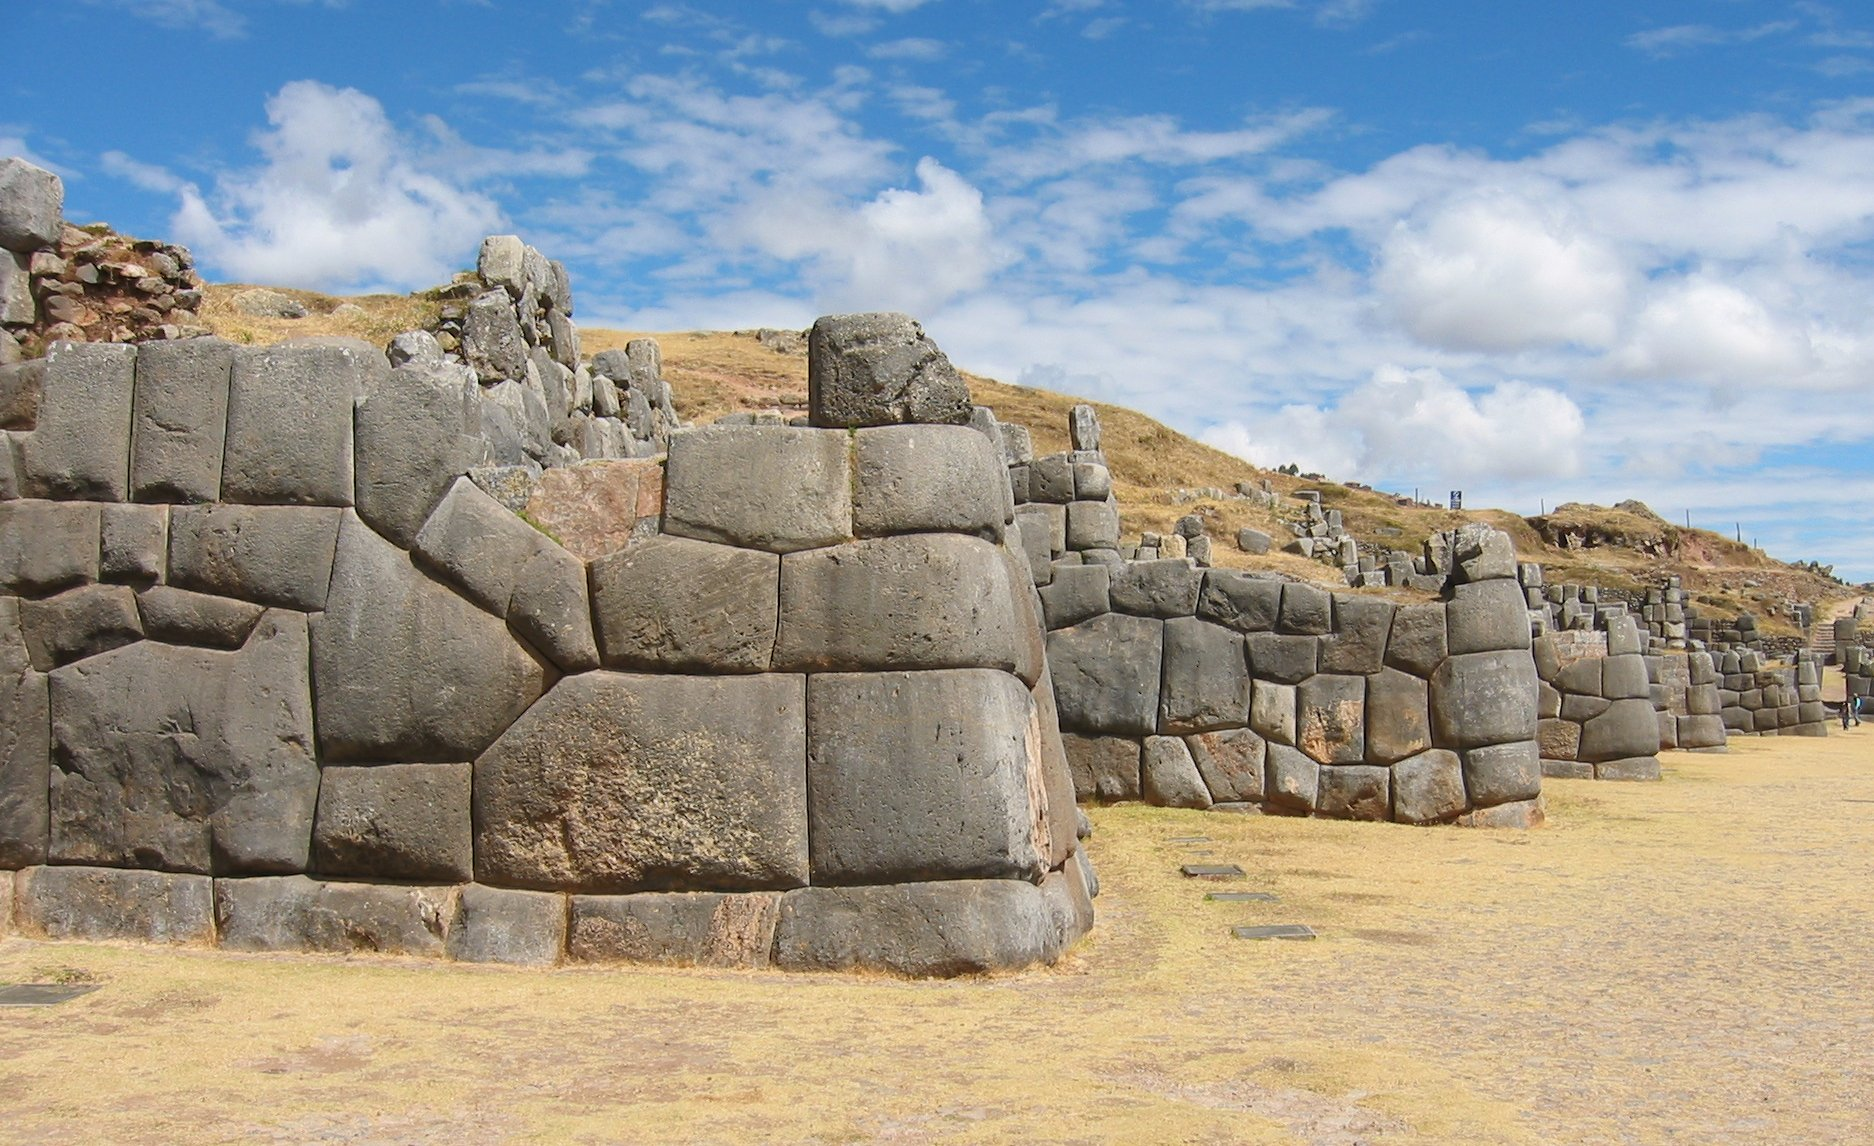 File:Walls at Sacsayhuaman.jpg - WikipediaInca Buildings And Structures